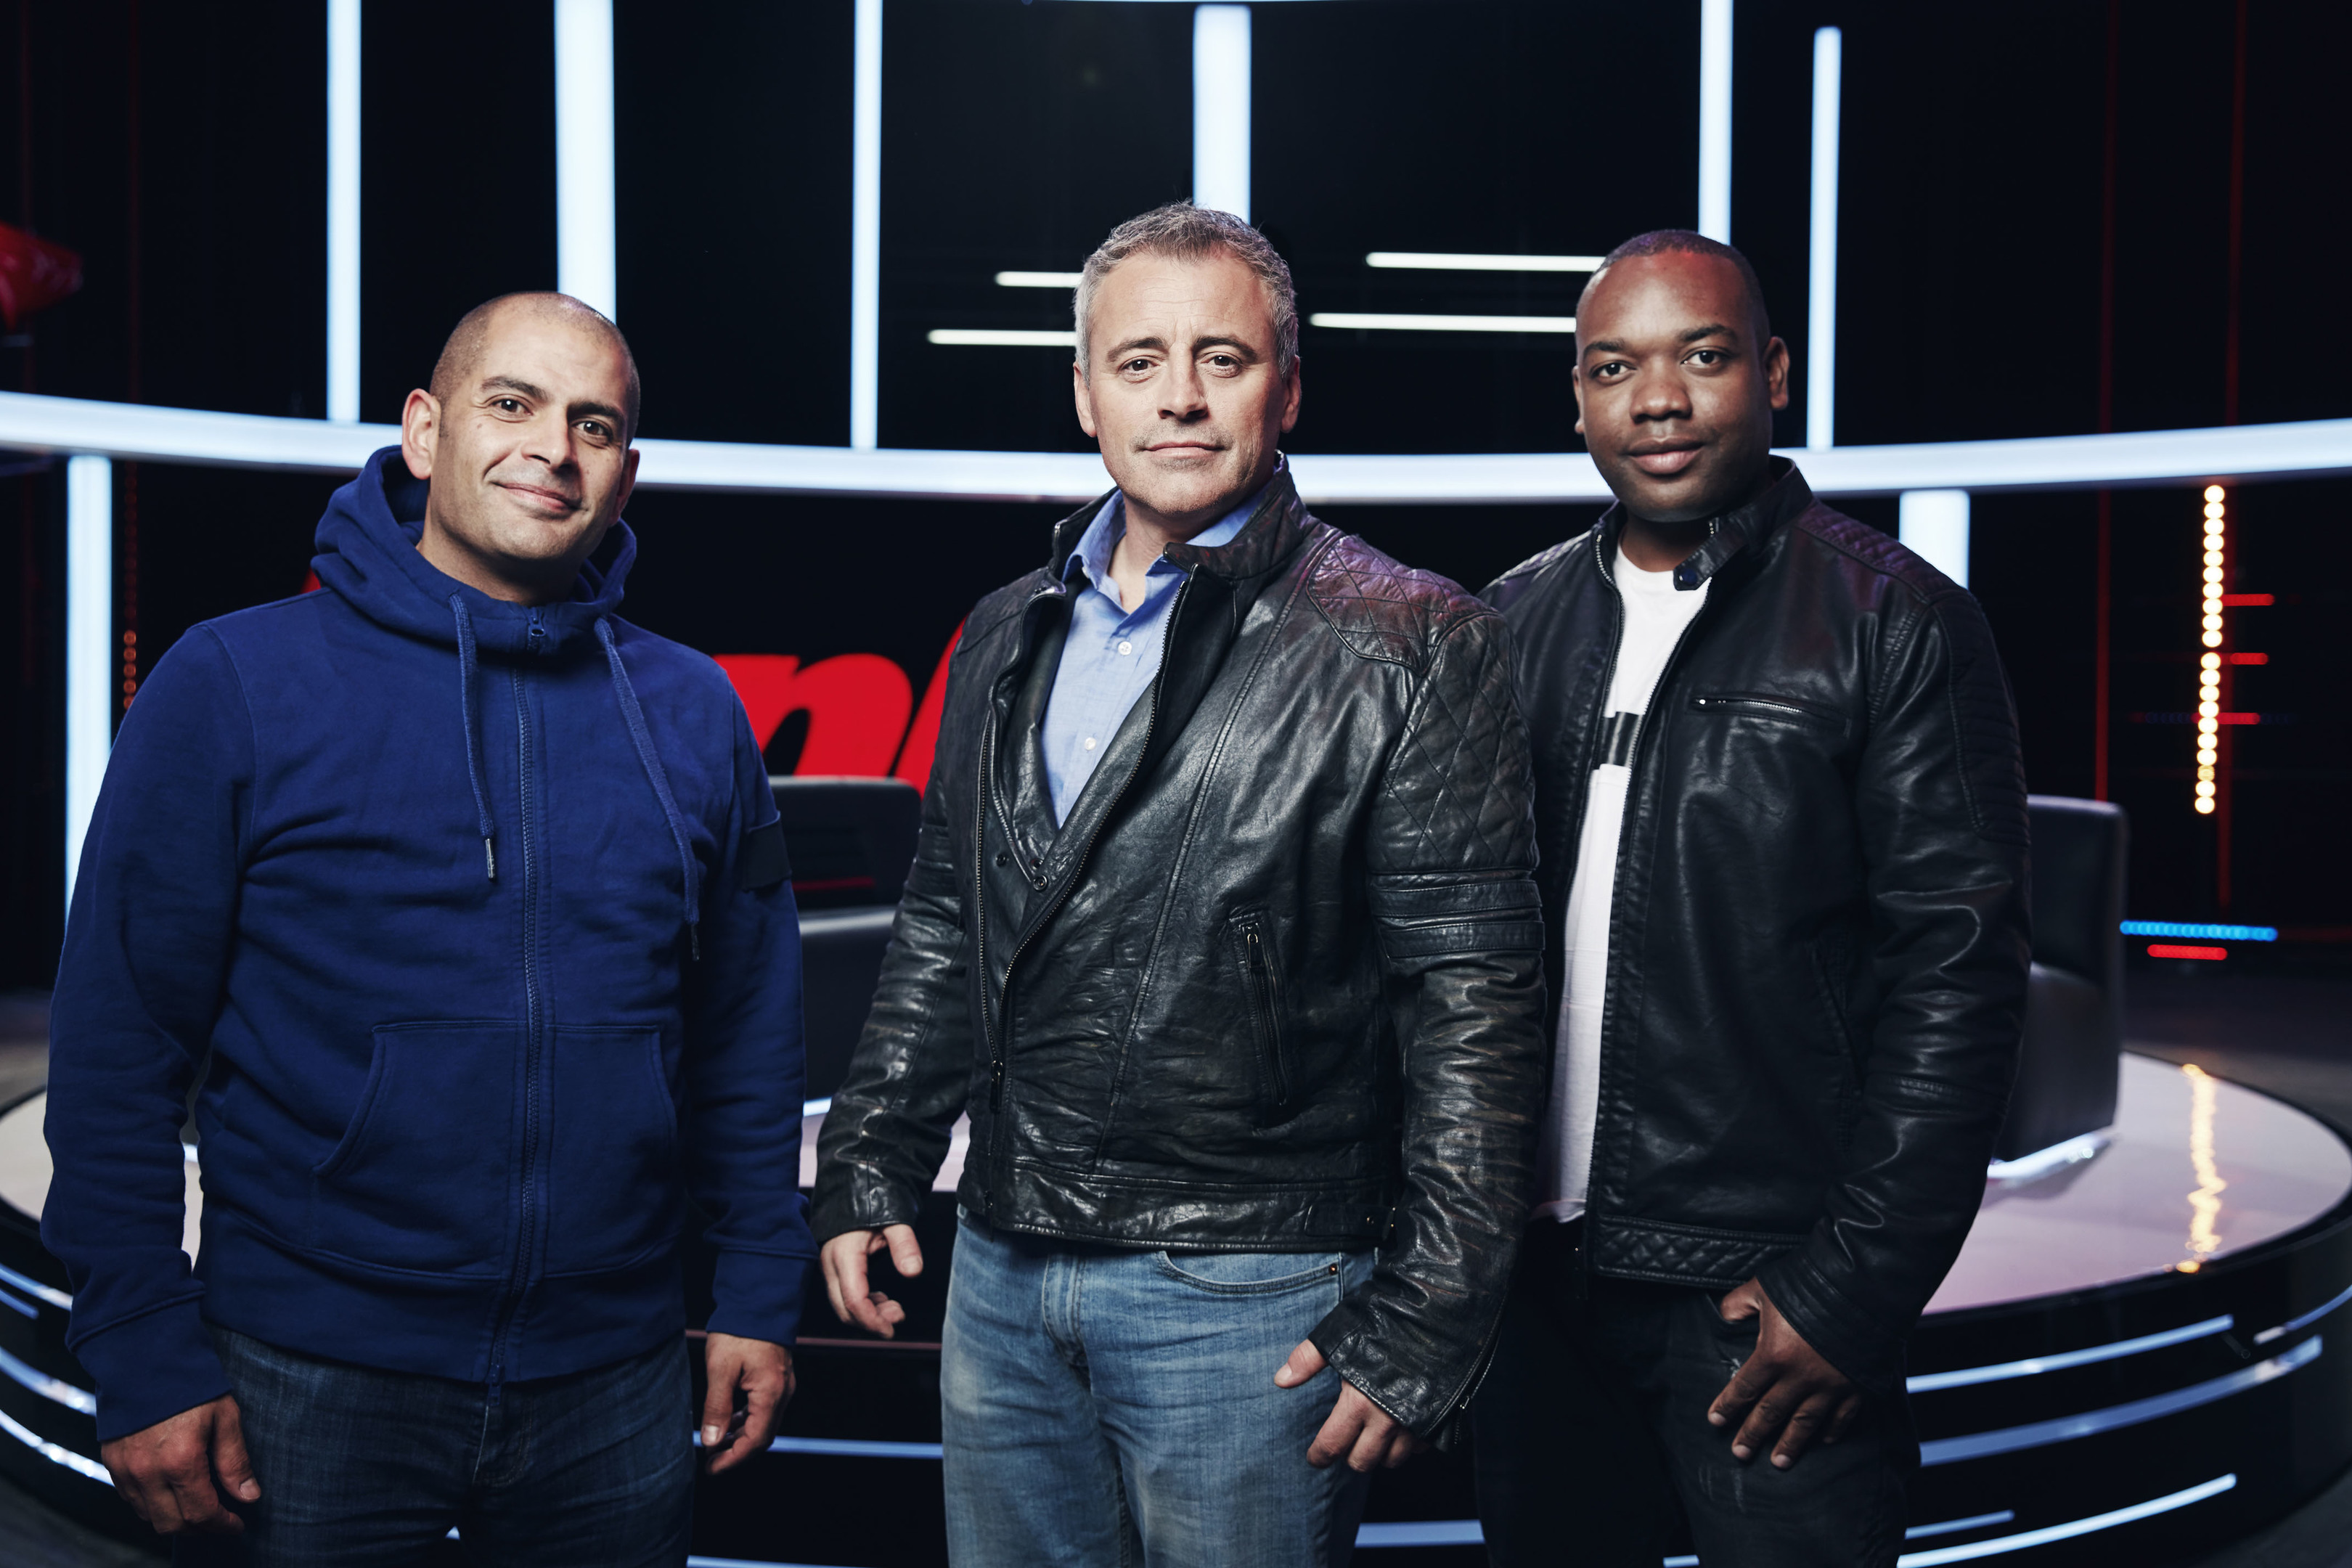 Top Gear presenters Rory Reid, Matt LeBlanc and Chris Harris (BBC WorldWide / Tom Barnes)